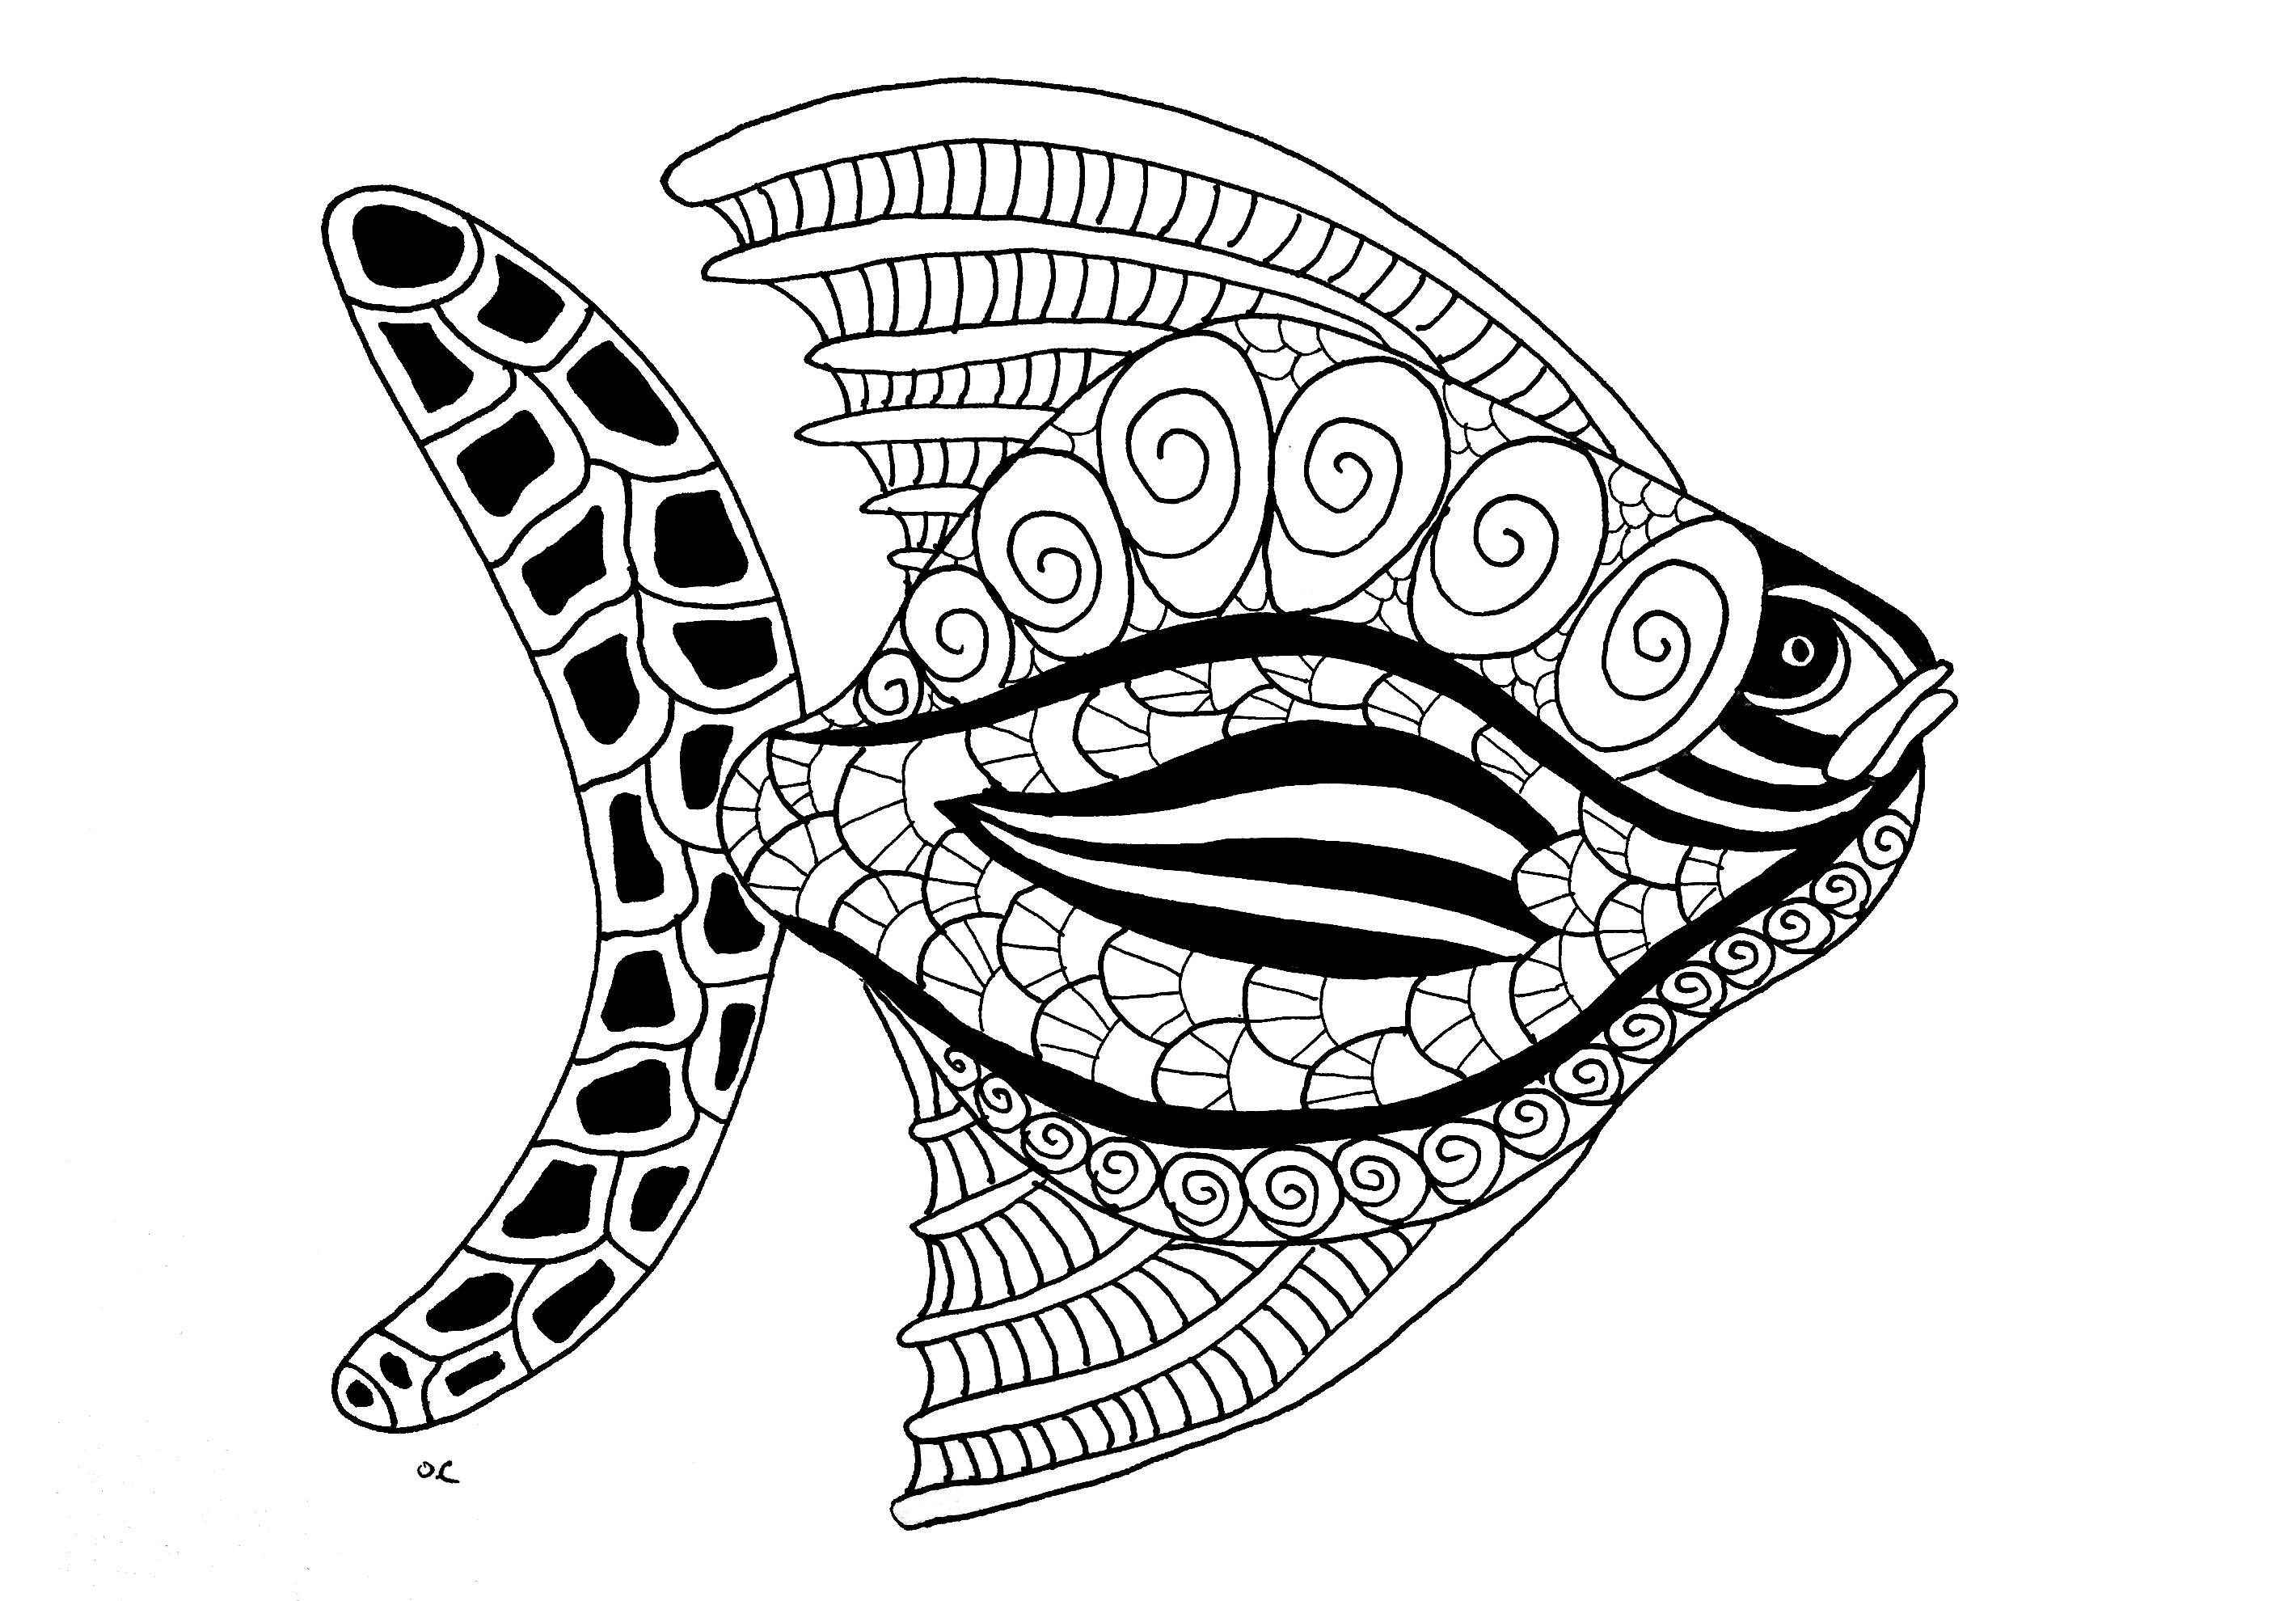 Poisson Zentangle Etape 2 Gratuit A Imprimer Coloriage Adulte